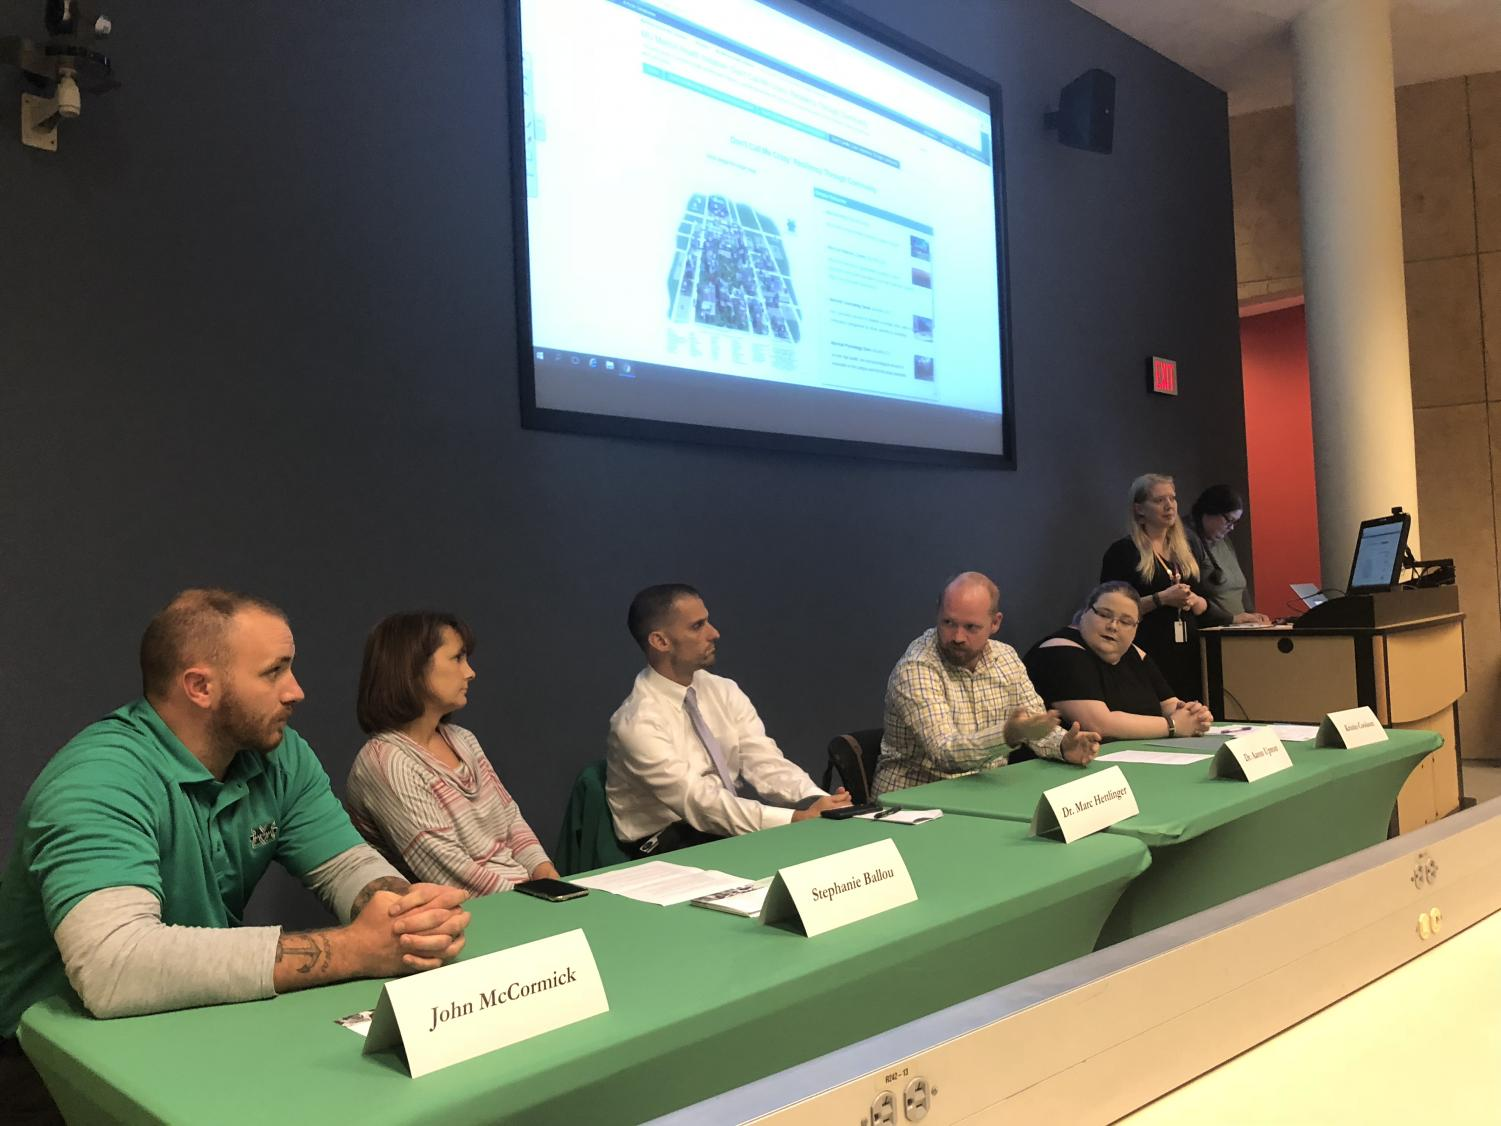 Suggested photo caption: John McCormick, Stephanie Ballou, Dr. Marc Hettlinger, Dr. Aaron Upton and Kristin Cookson participate in a panel discussion on mental health with Marshall students in Drinko Library Room 402.